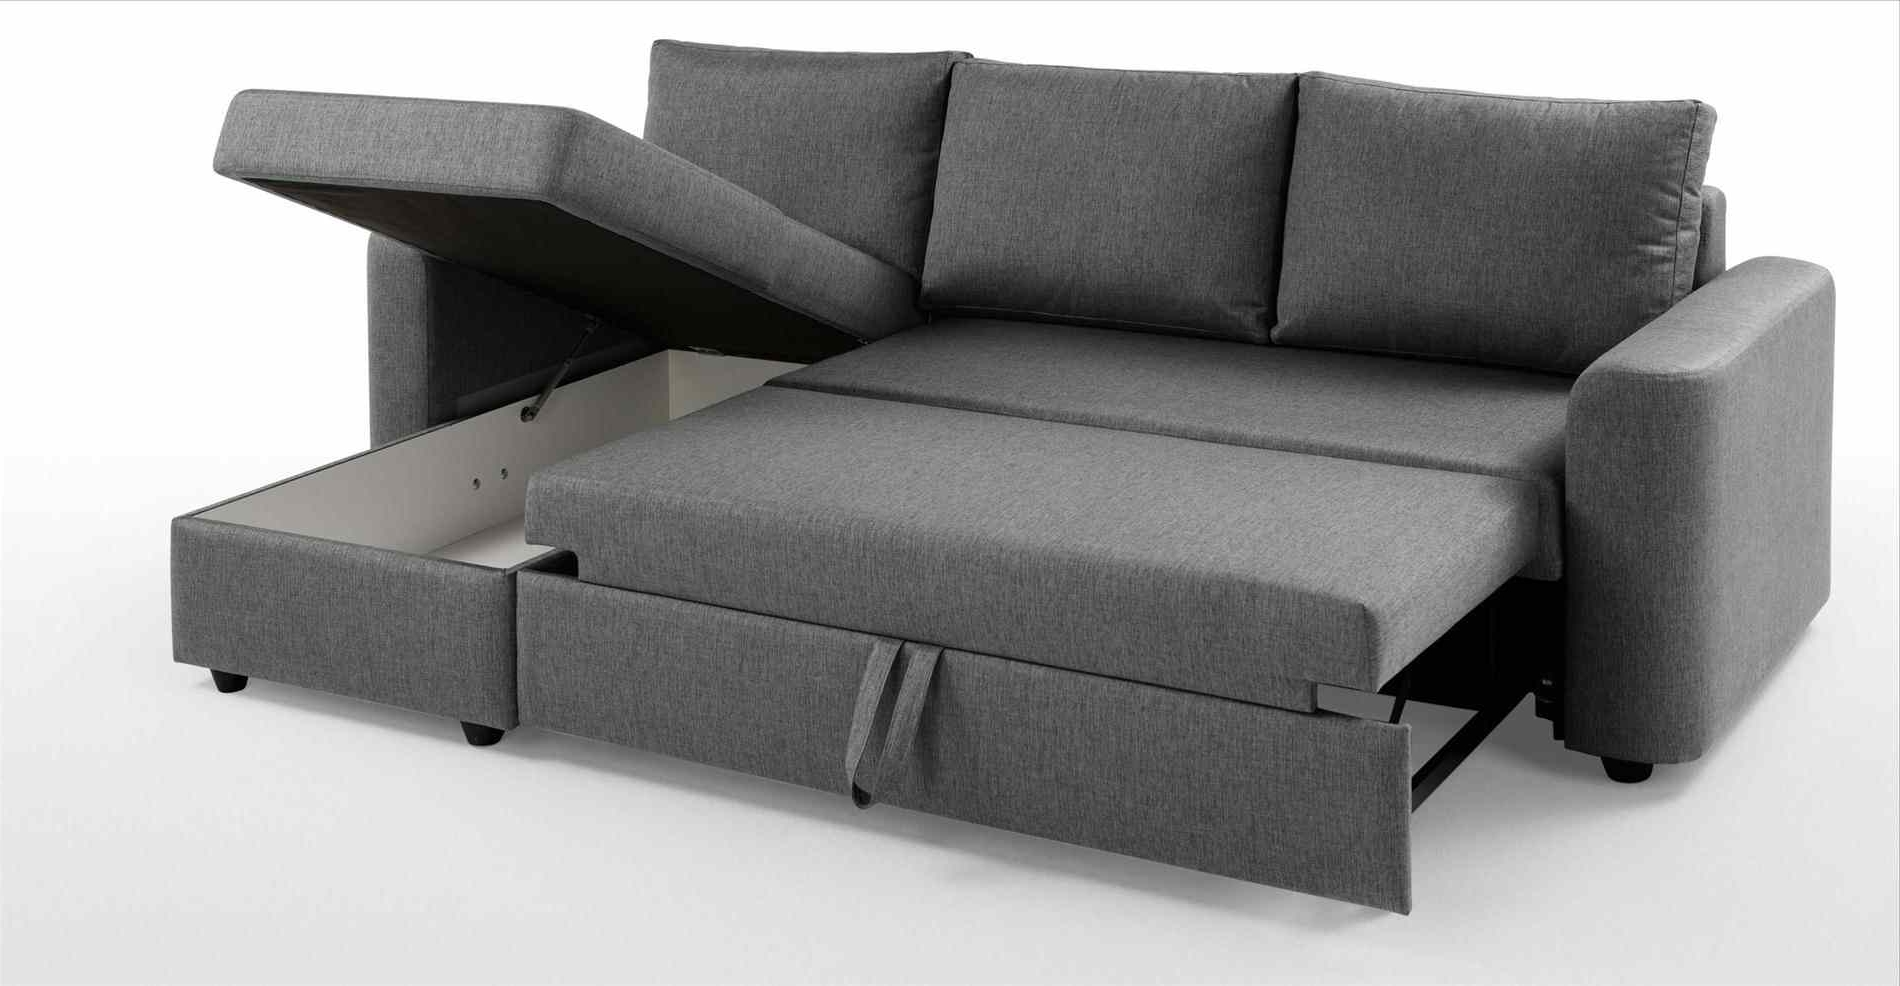 Best And Newest Sofa : Friheten Storage Sofa Bed Corner With Skiftebo Dark Gray With Sectional Sofas In Philippines (View 2 of 15)